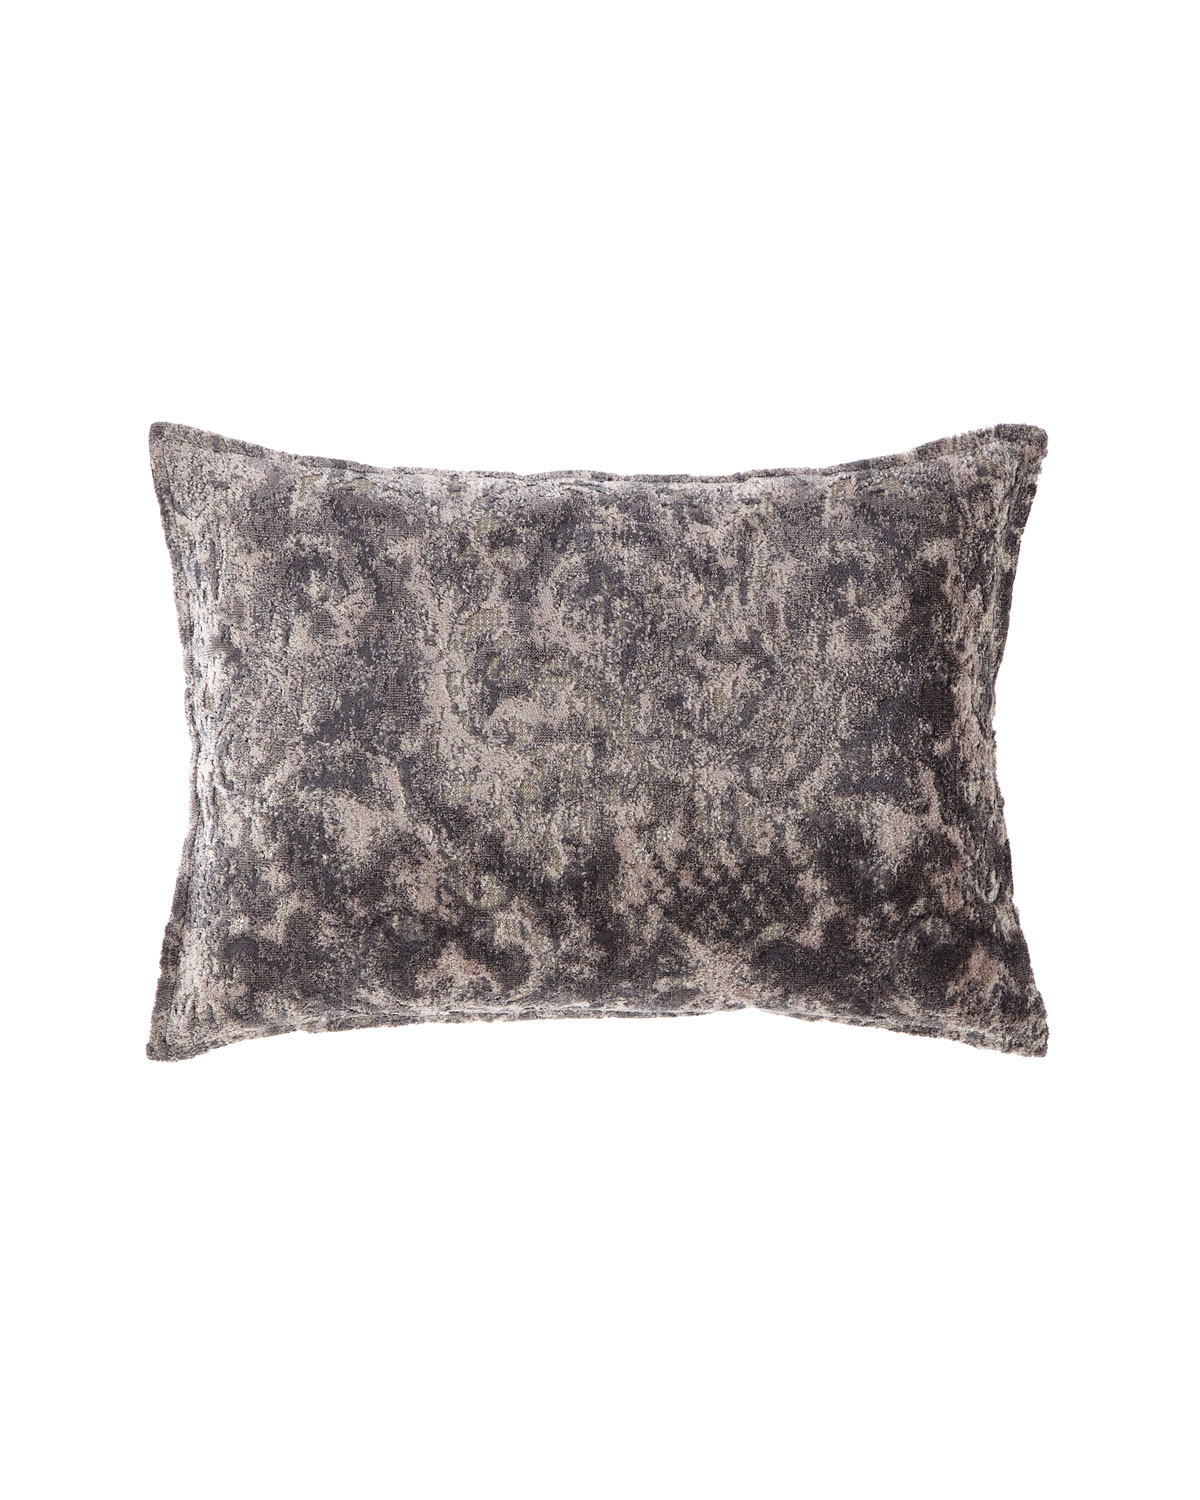 Fino Lino Linen & Lace VERBINA GRAY CHAISE PILLOW